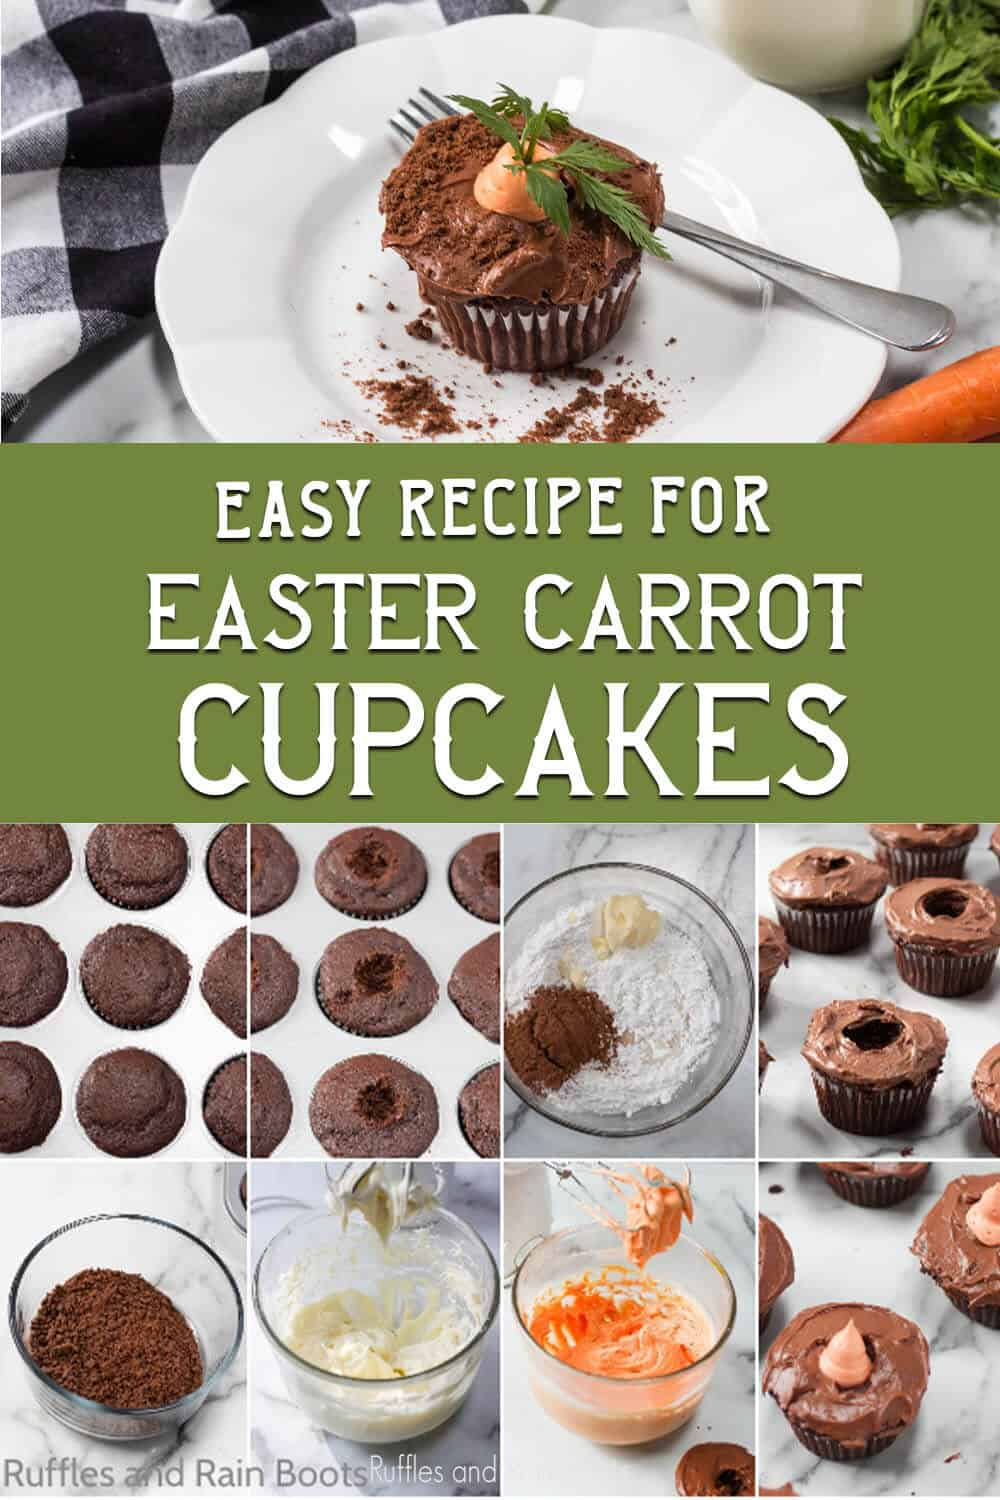 photo collage of chocolate cupcakes with a carrot on top with text which reads easy recipe for easter carrot cupcakes